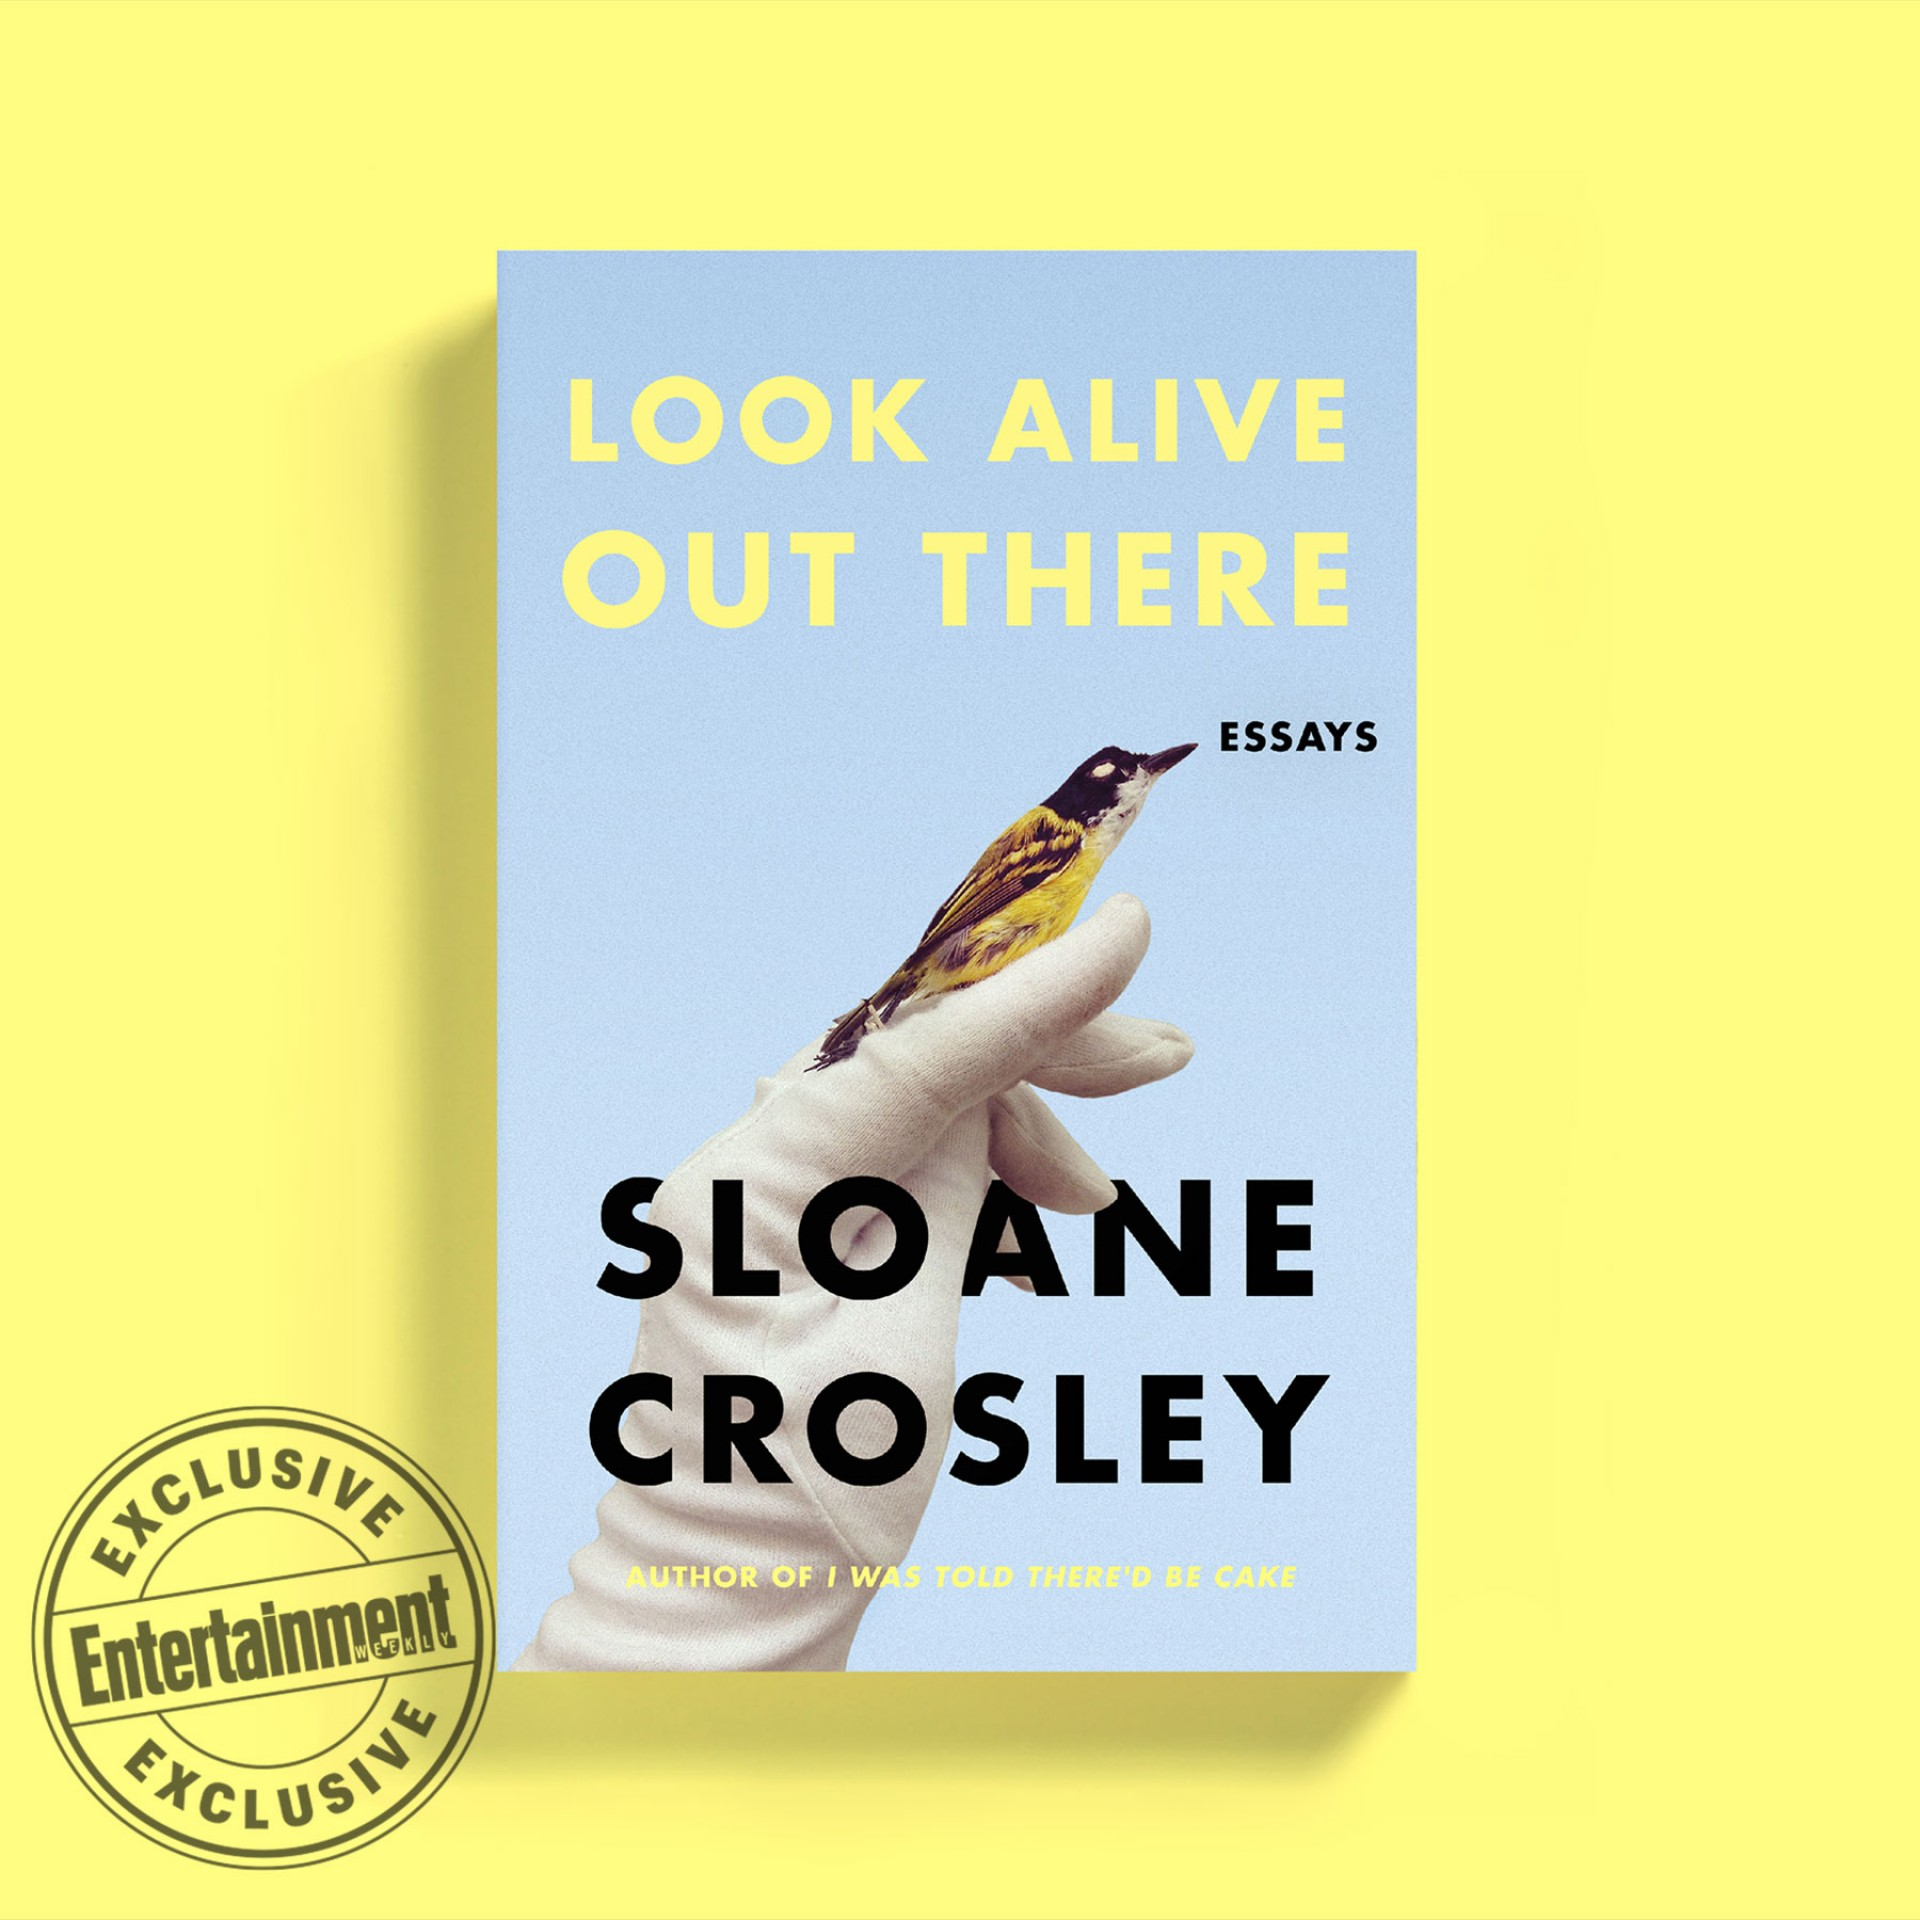 013 Essay Collection Example Sloane Crosley Shocking Collections For Students 2017 Best Pdf 1920